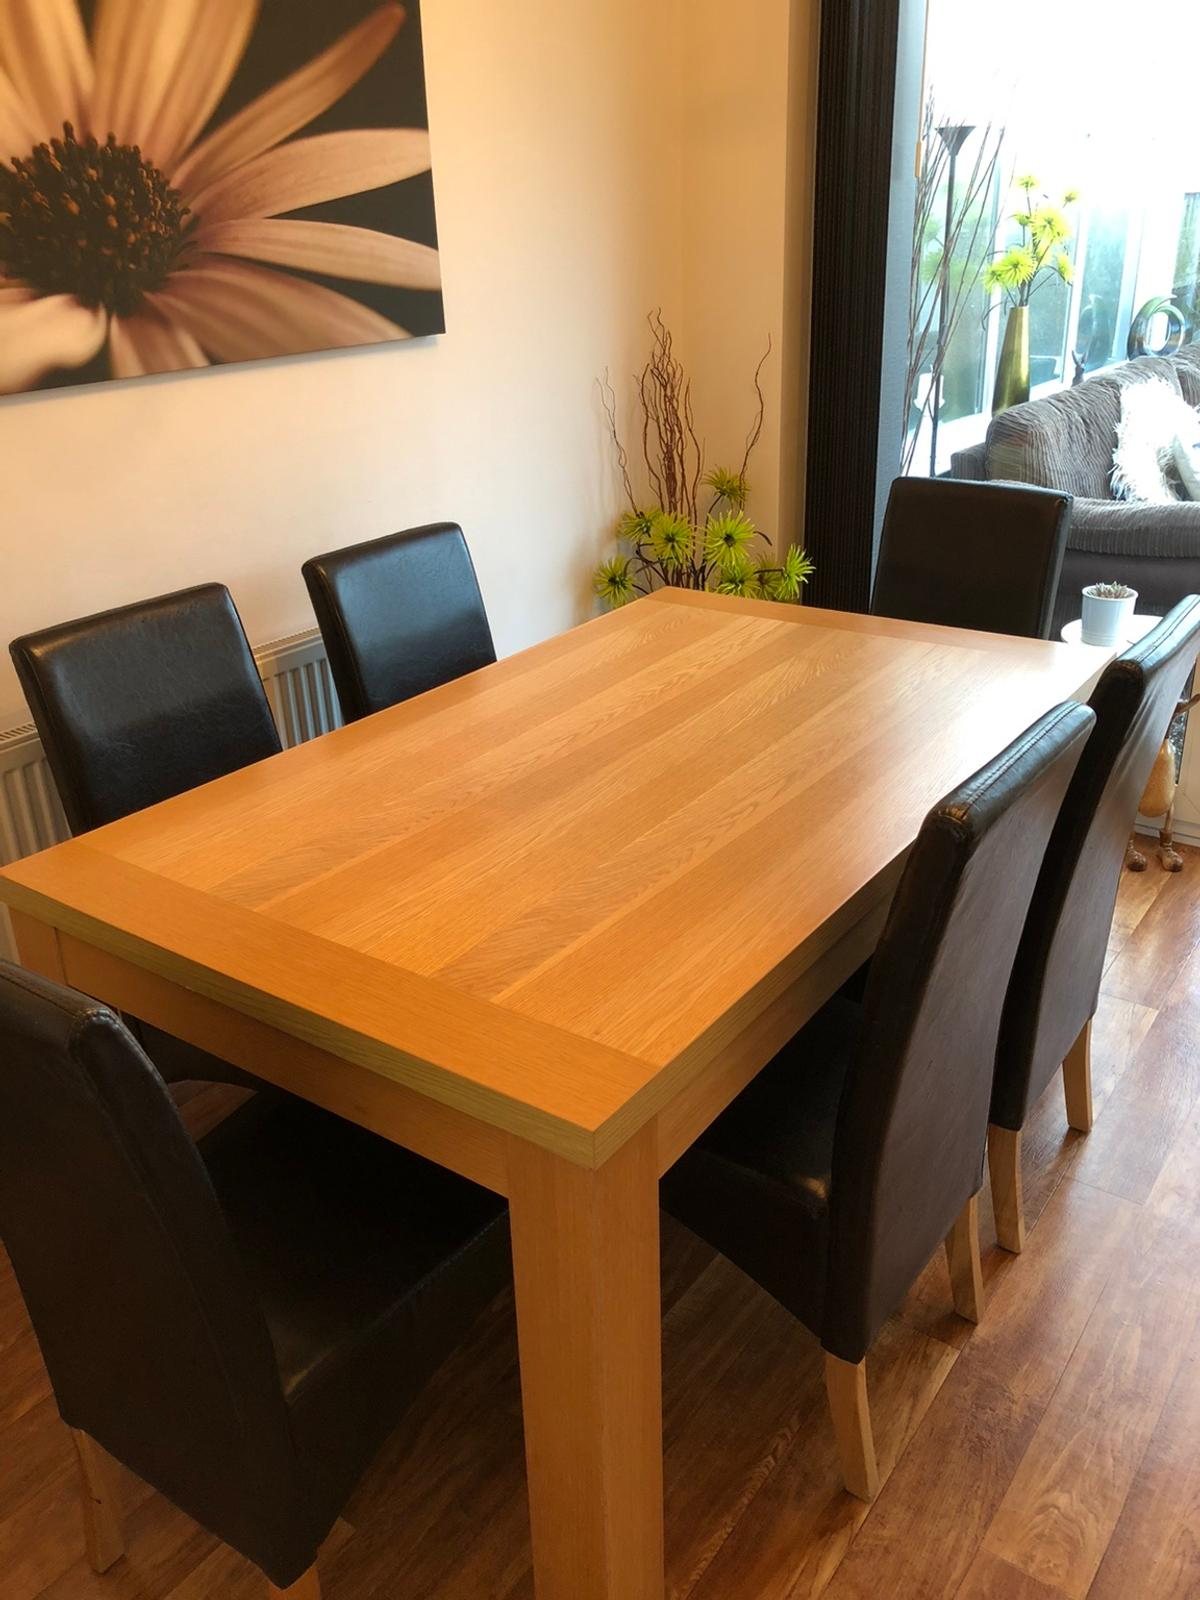 Oak veneer dining room table and 6 brown faux leather chairs. In used condition see photos for wear and tear. Needs gone ASAP. Collection only.